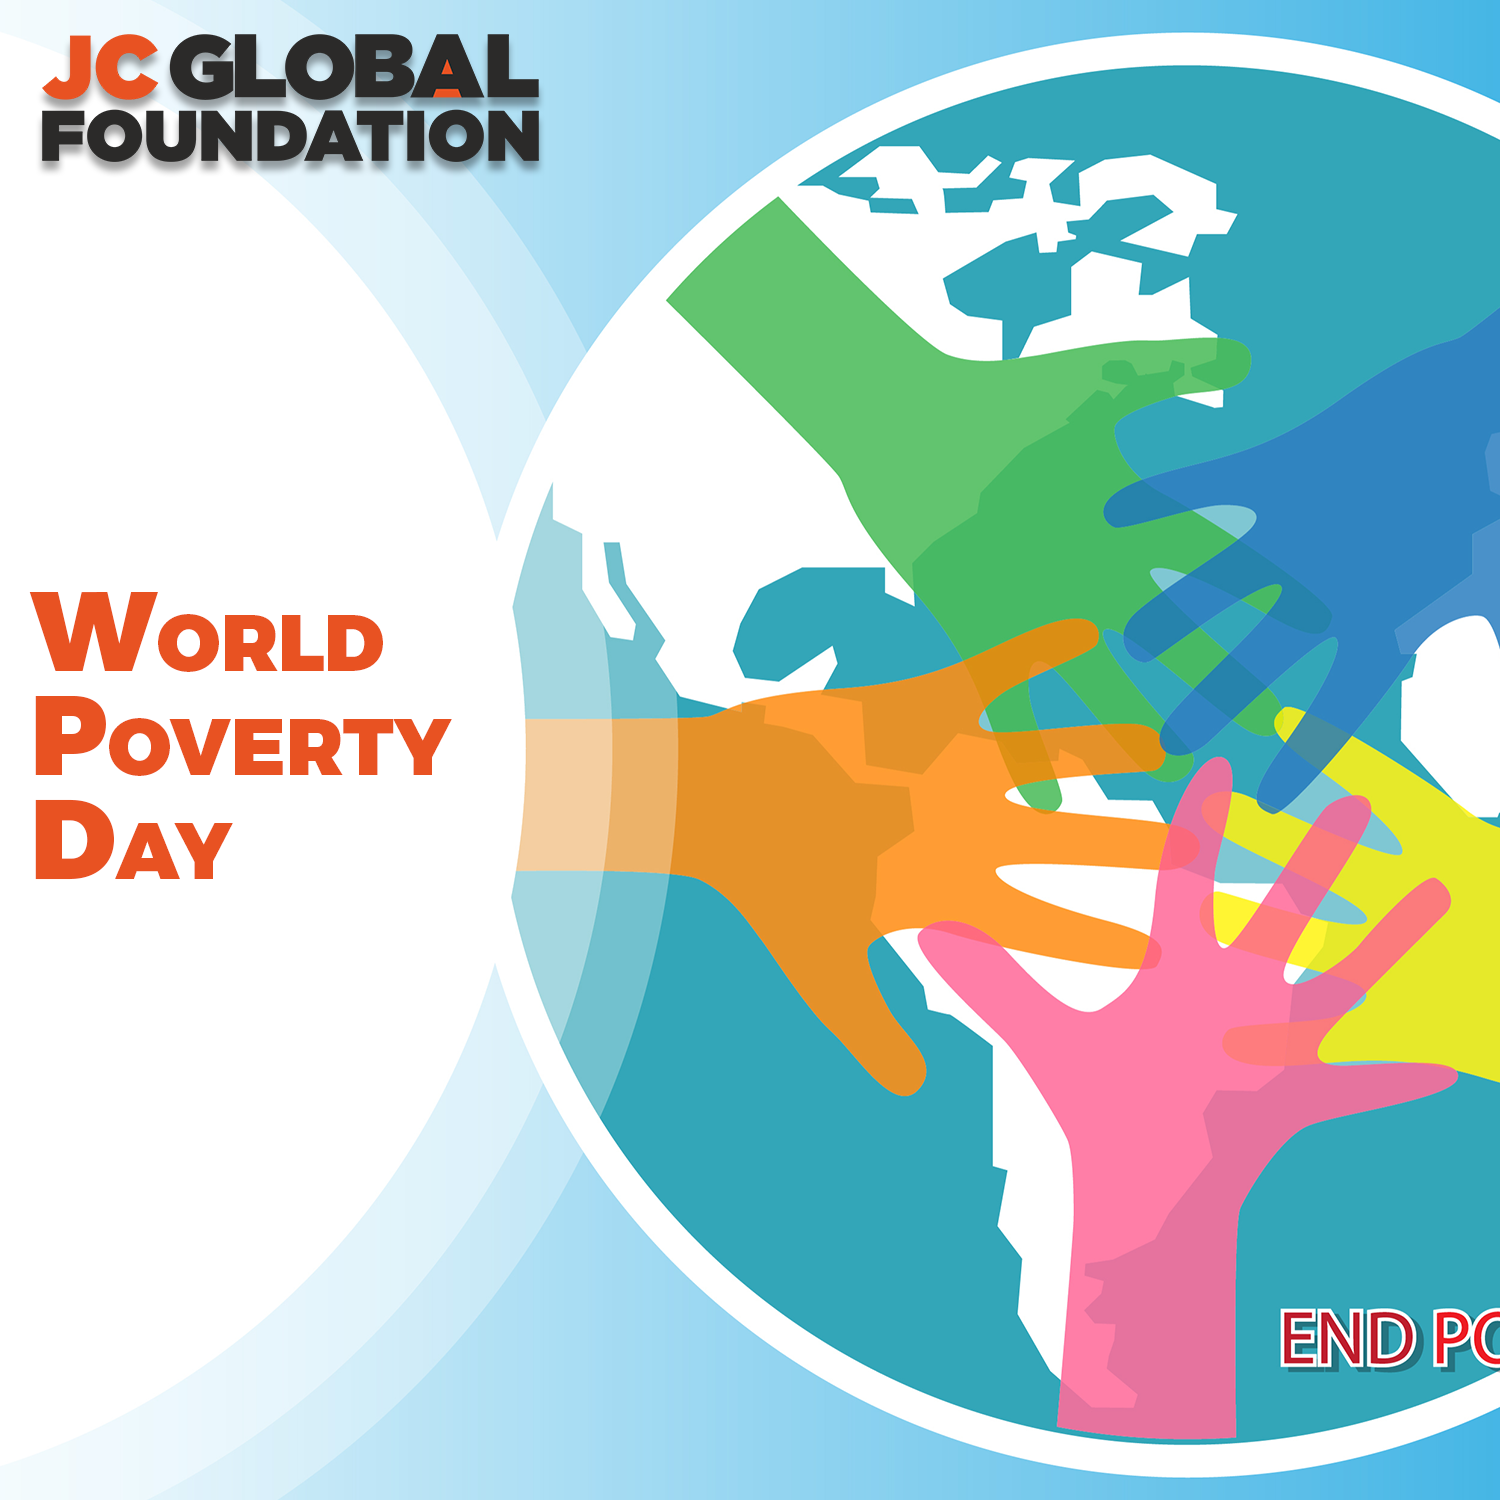 World Poverty Day Aims To Raise Awareness About The Need To End